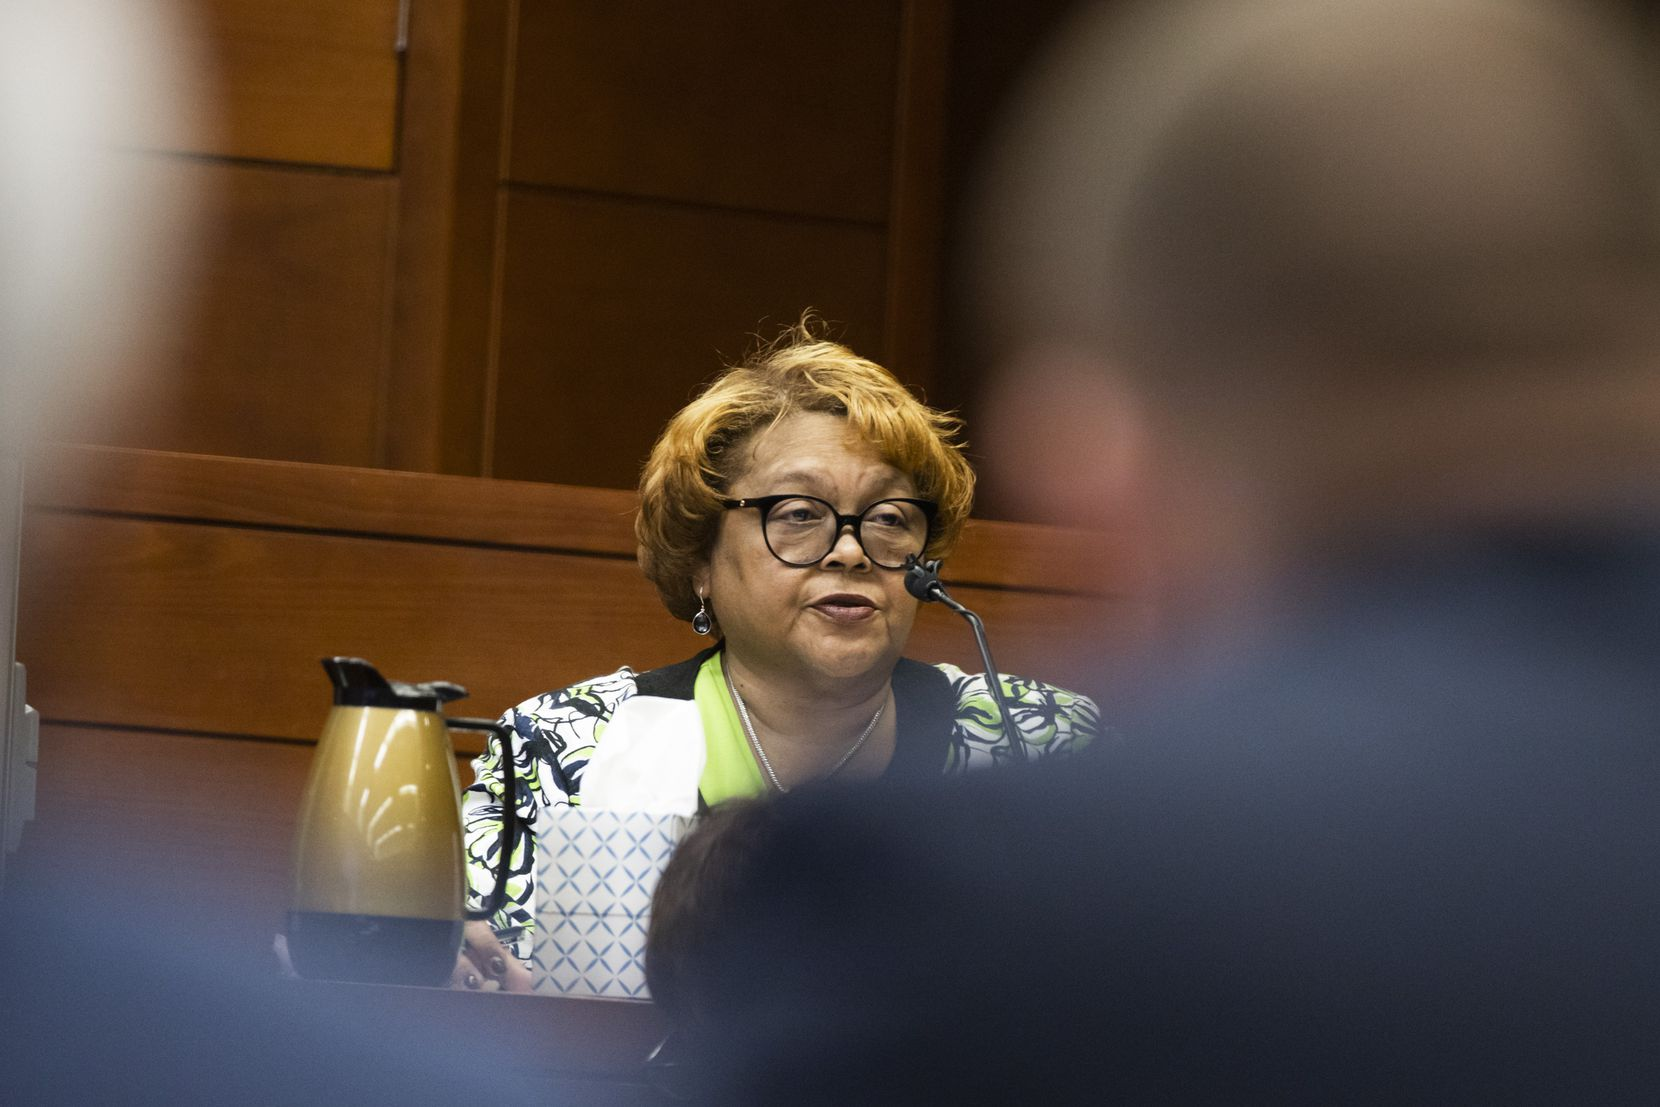 Dallas County Elections Administrator Toni Pippins-Poole testifies during a hearing before Judge Emily Tobolowsky (not pictured) at the George Allen Dallas County Civil Court building in downtown Dallas on Tuesday, March 10, 2020. Tobolowsky granted Pippins-Poole to reopen the primary election ballot results to verify the ballots counted at 44 voting locations last Tuesday. (Lynda M. Gonzalez/The Dallas Morning News)